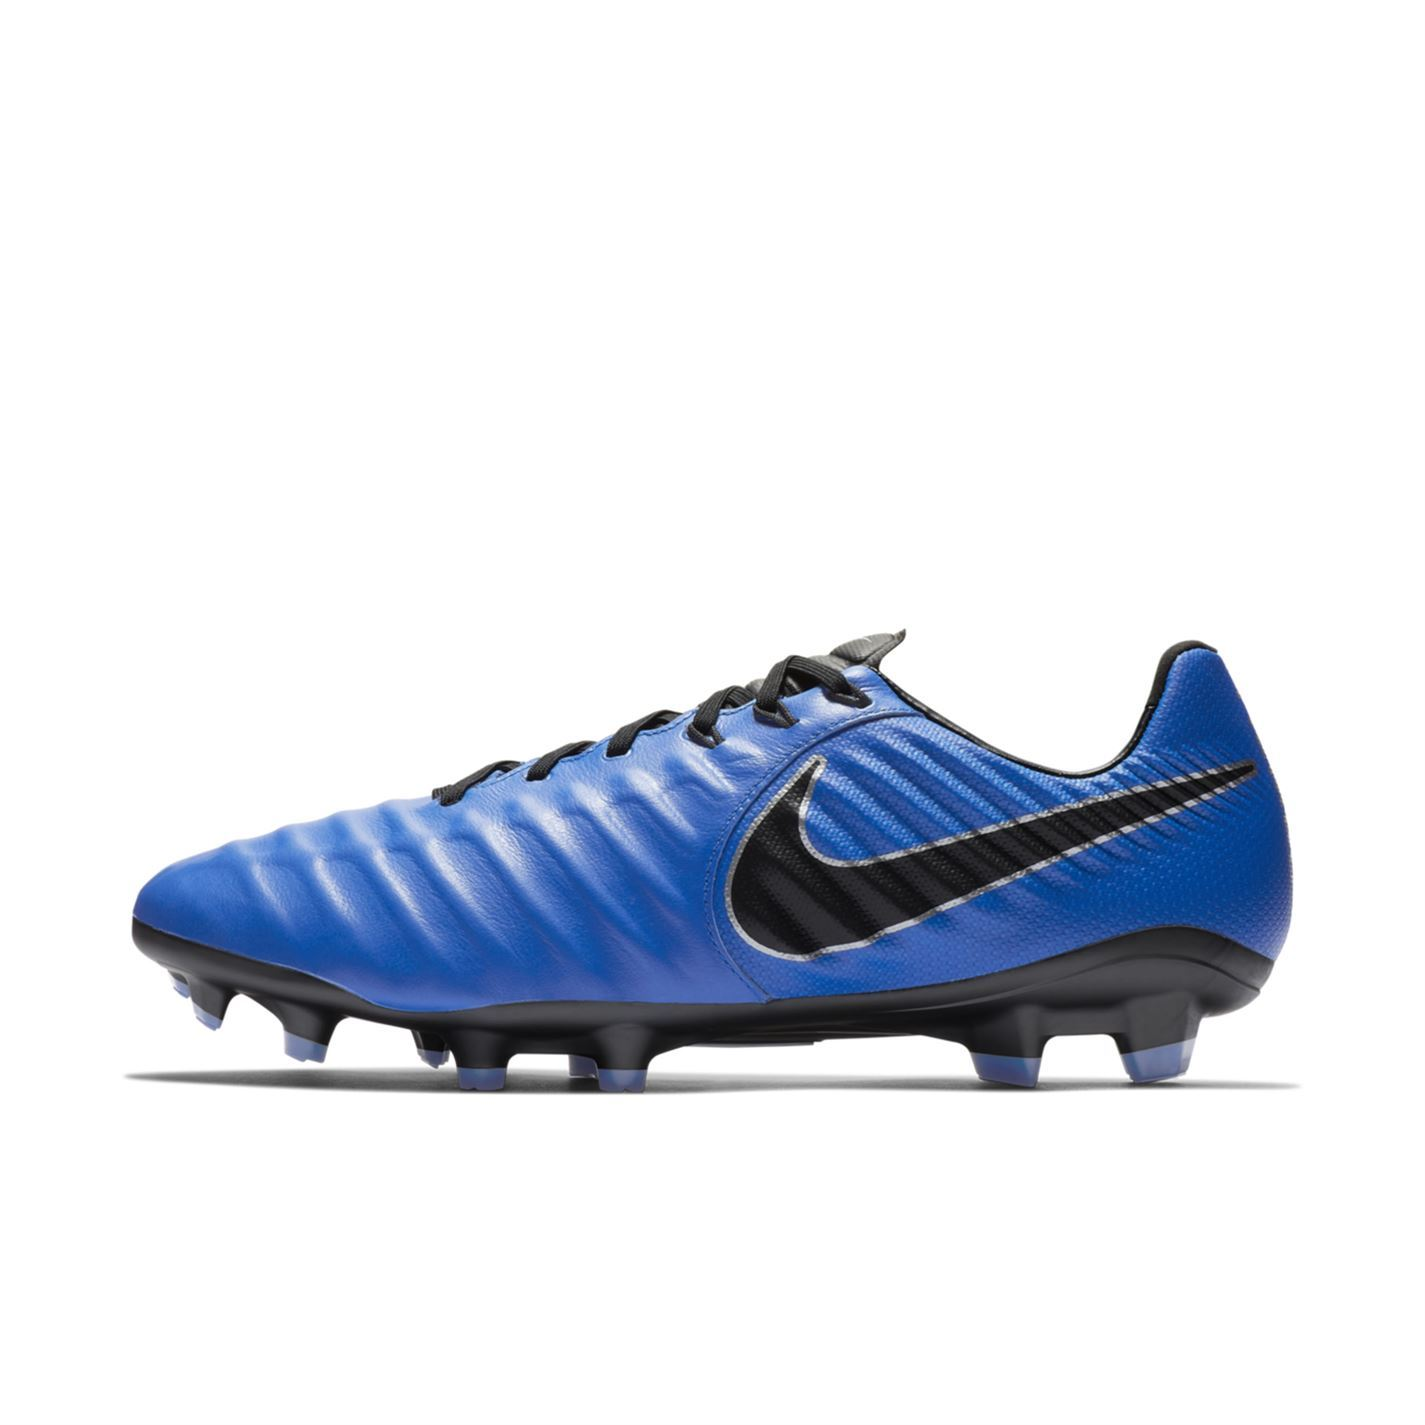 84690b114 Nike Tiempo Legend Pro FG Firm Ground Football Boots Mens Soccer ...